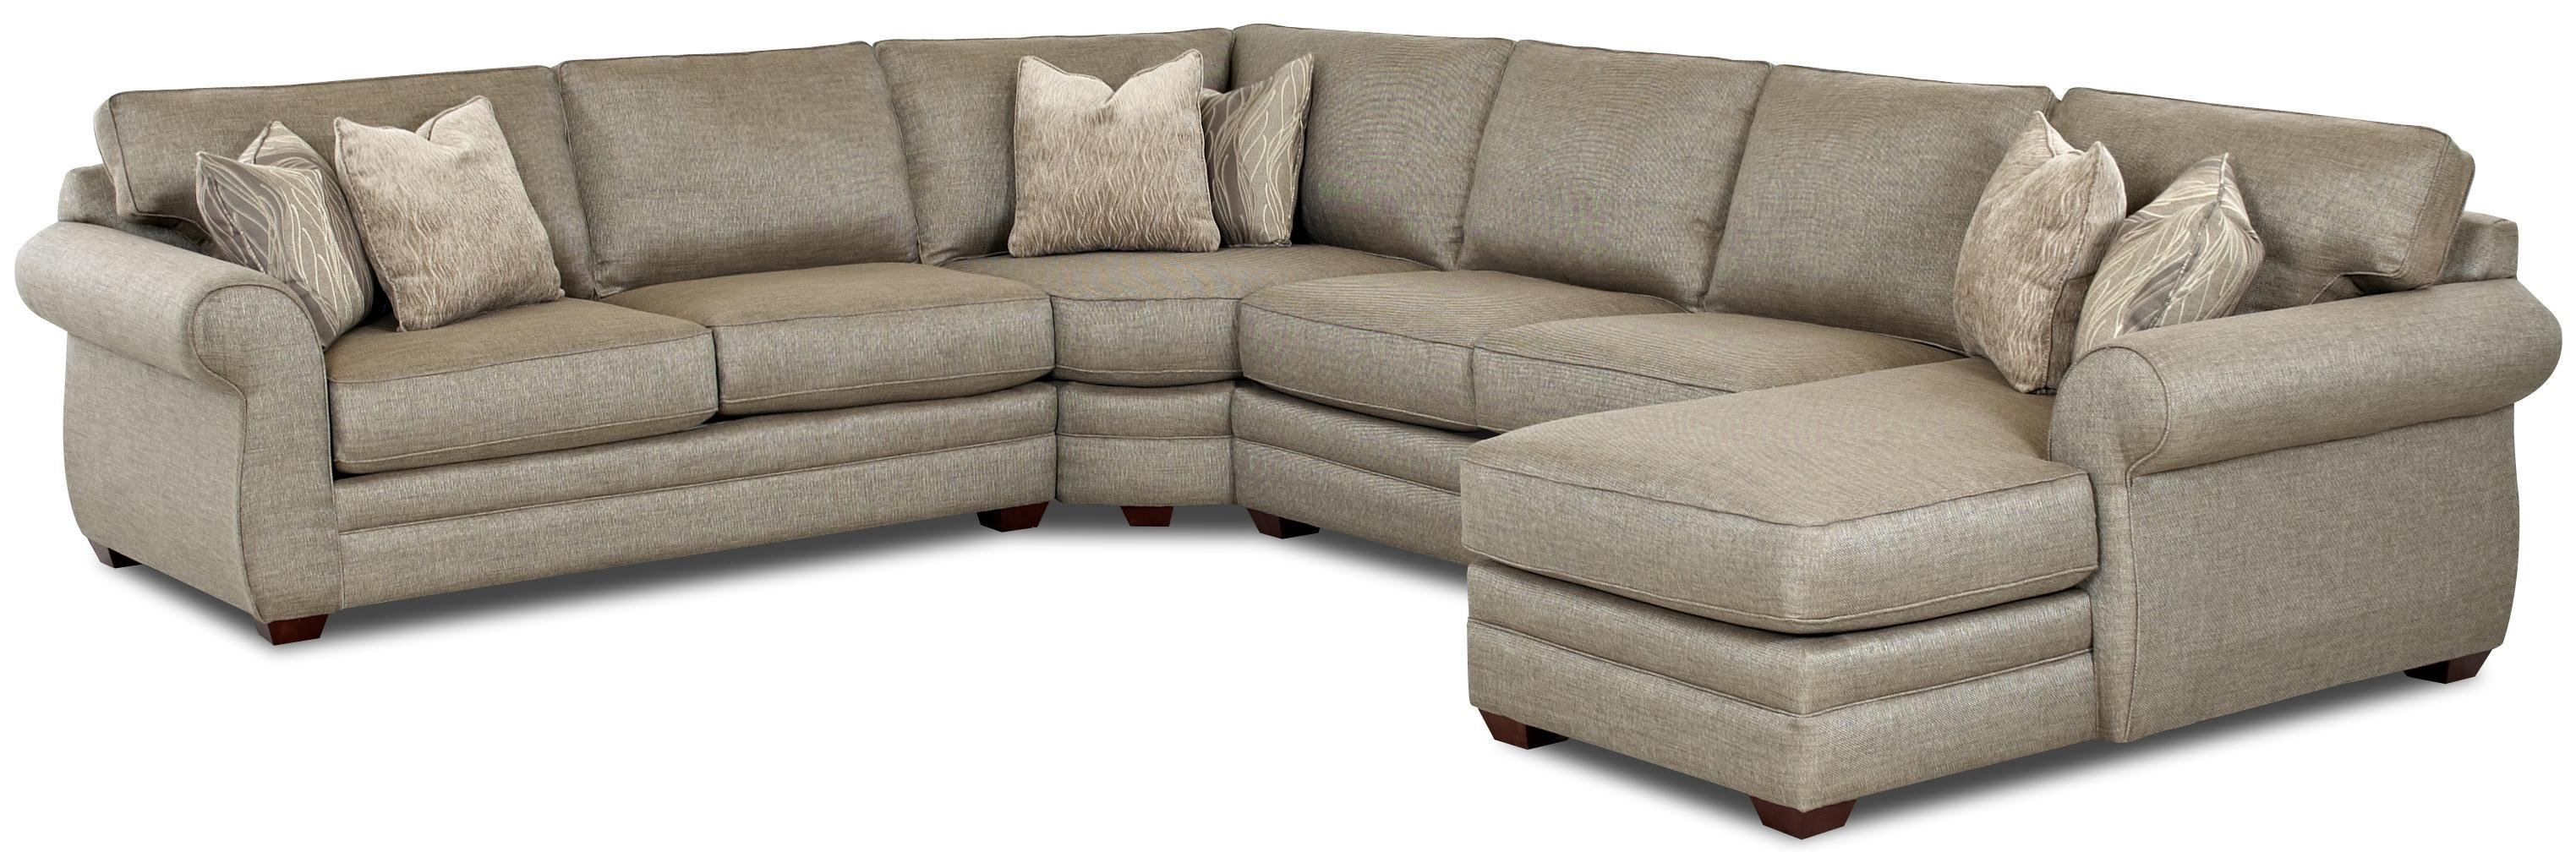 Transitional Sectional Sofa With Right Chaise And Full Sleeper Regarding Sectional Sofas With Sleeper And Chaise (Image 19 of 21)